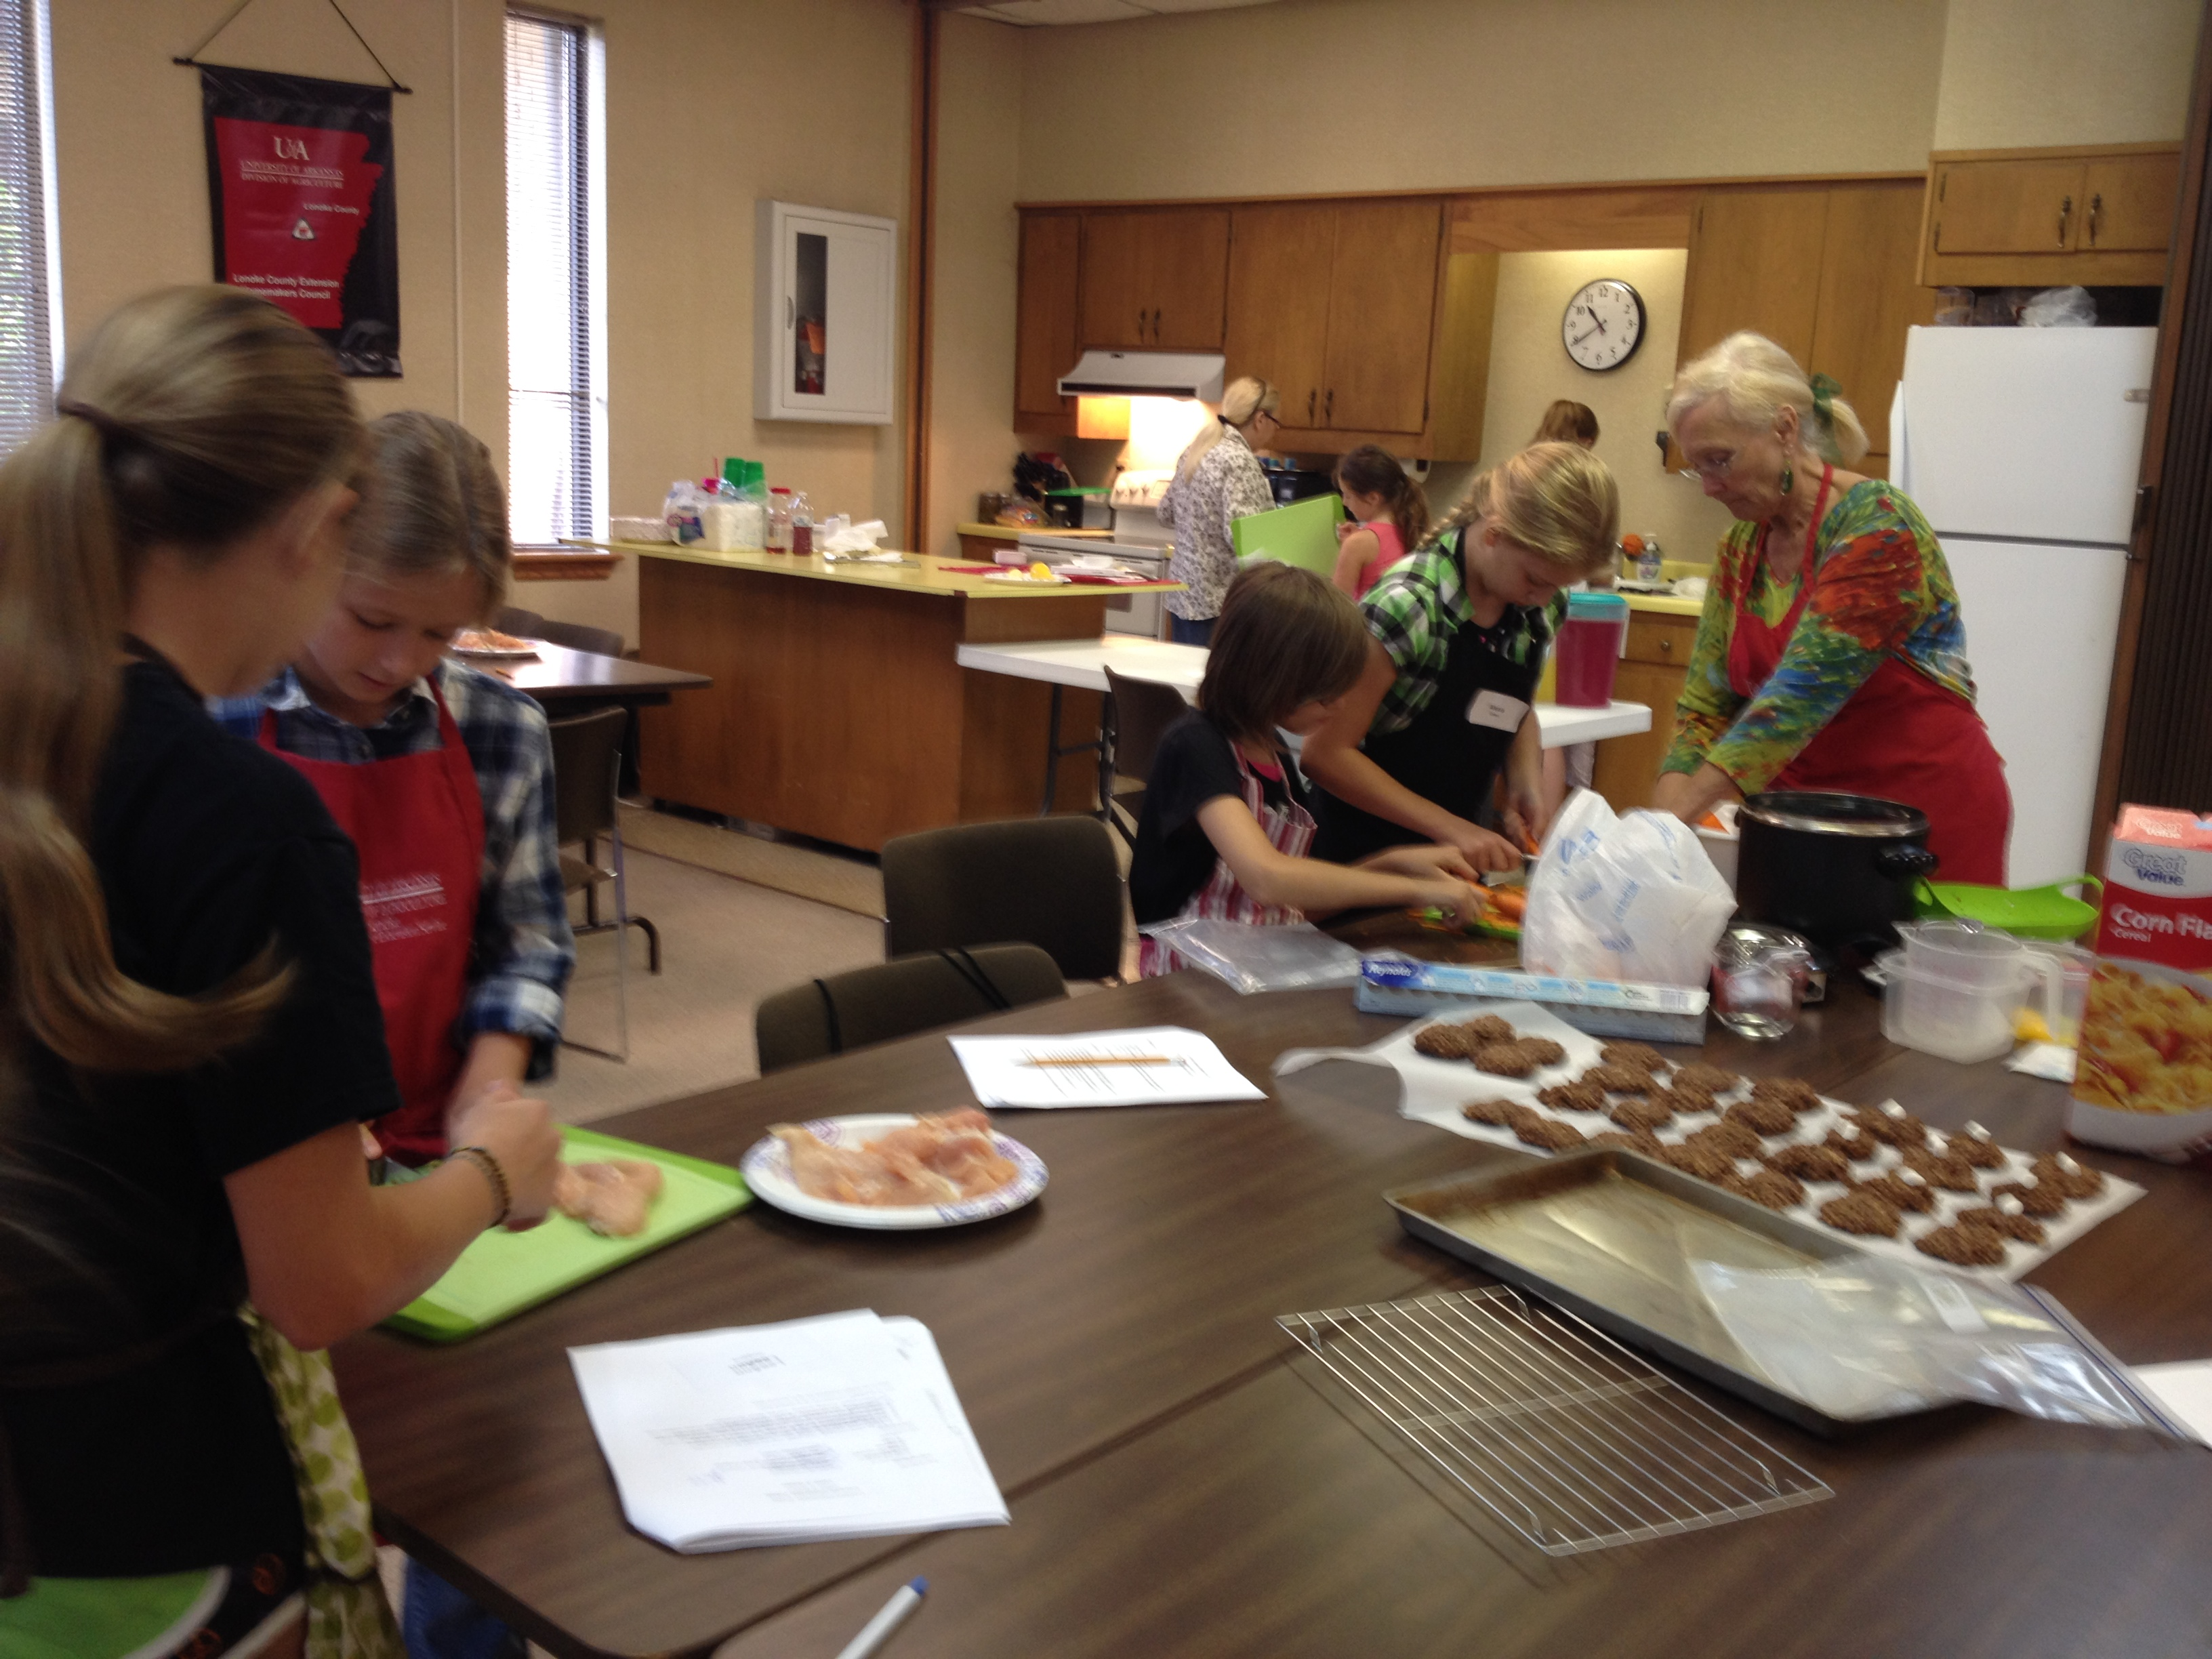 Youth preparing lunch at day camp